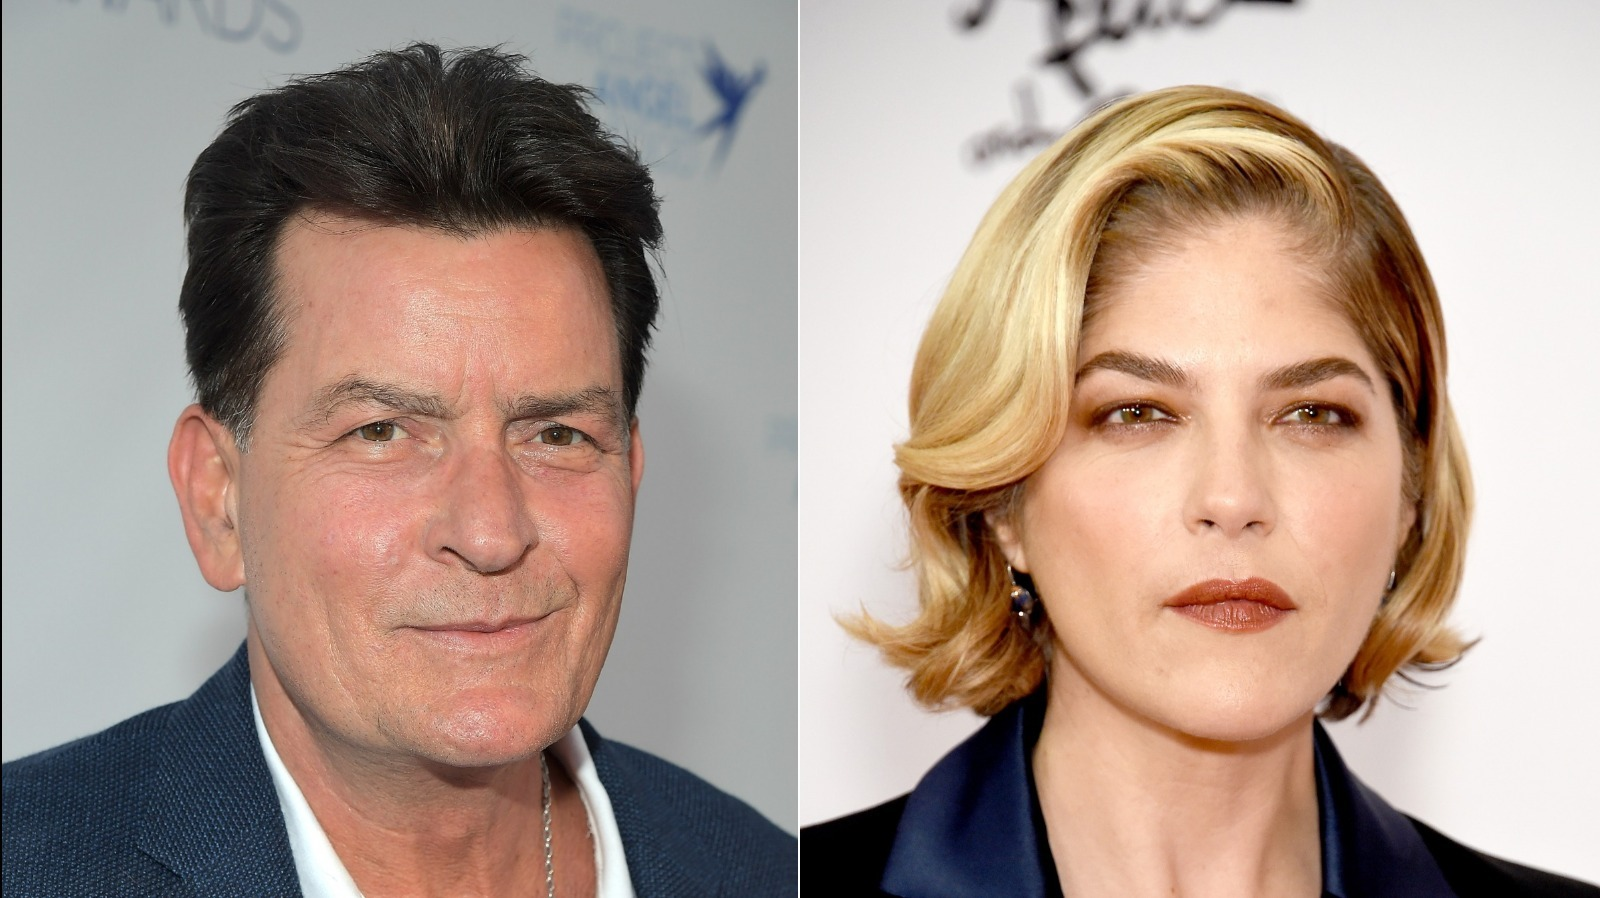 Inside Charlie Sheen and Selma Blair's tense relationship